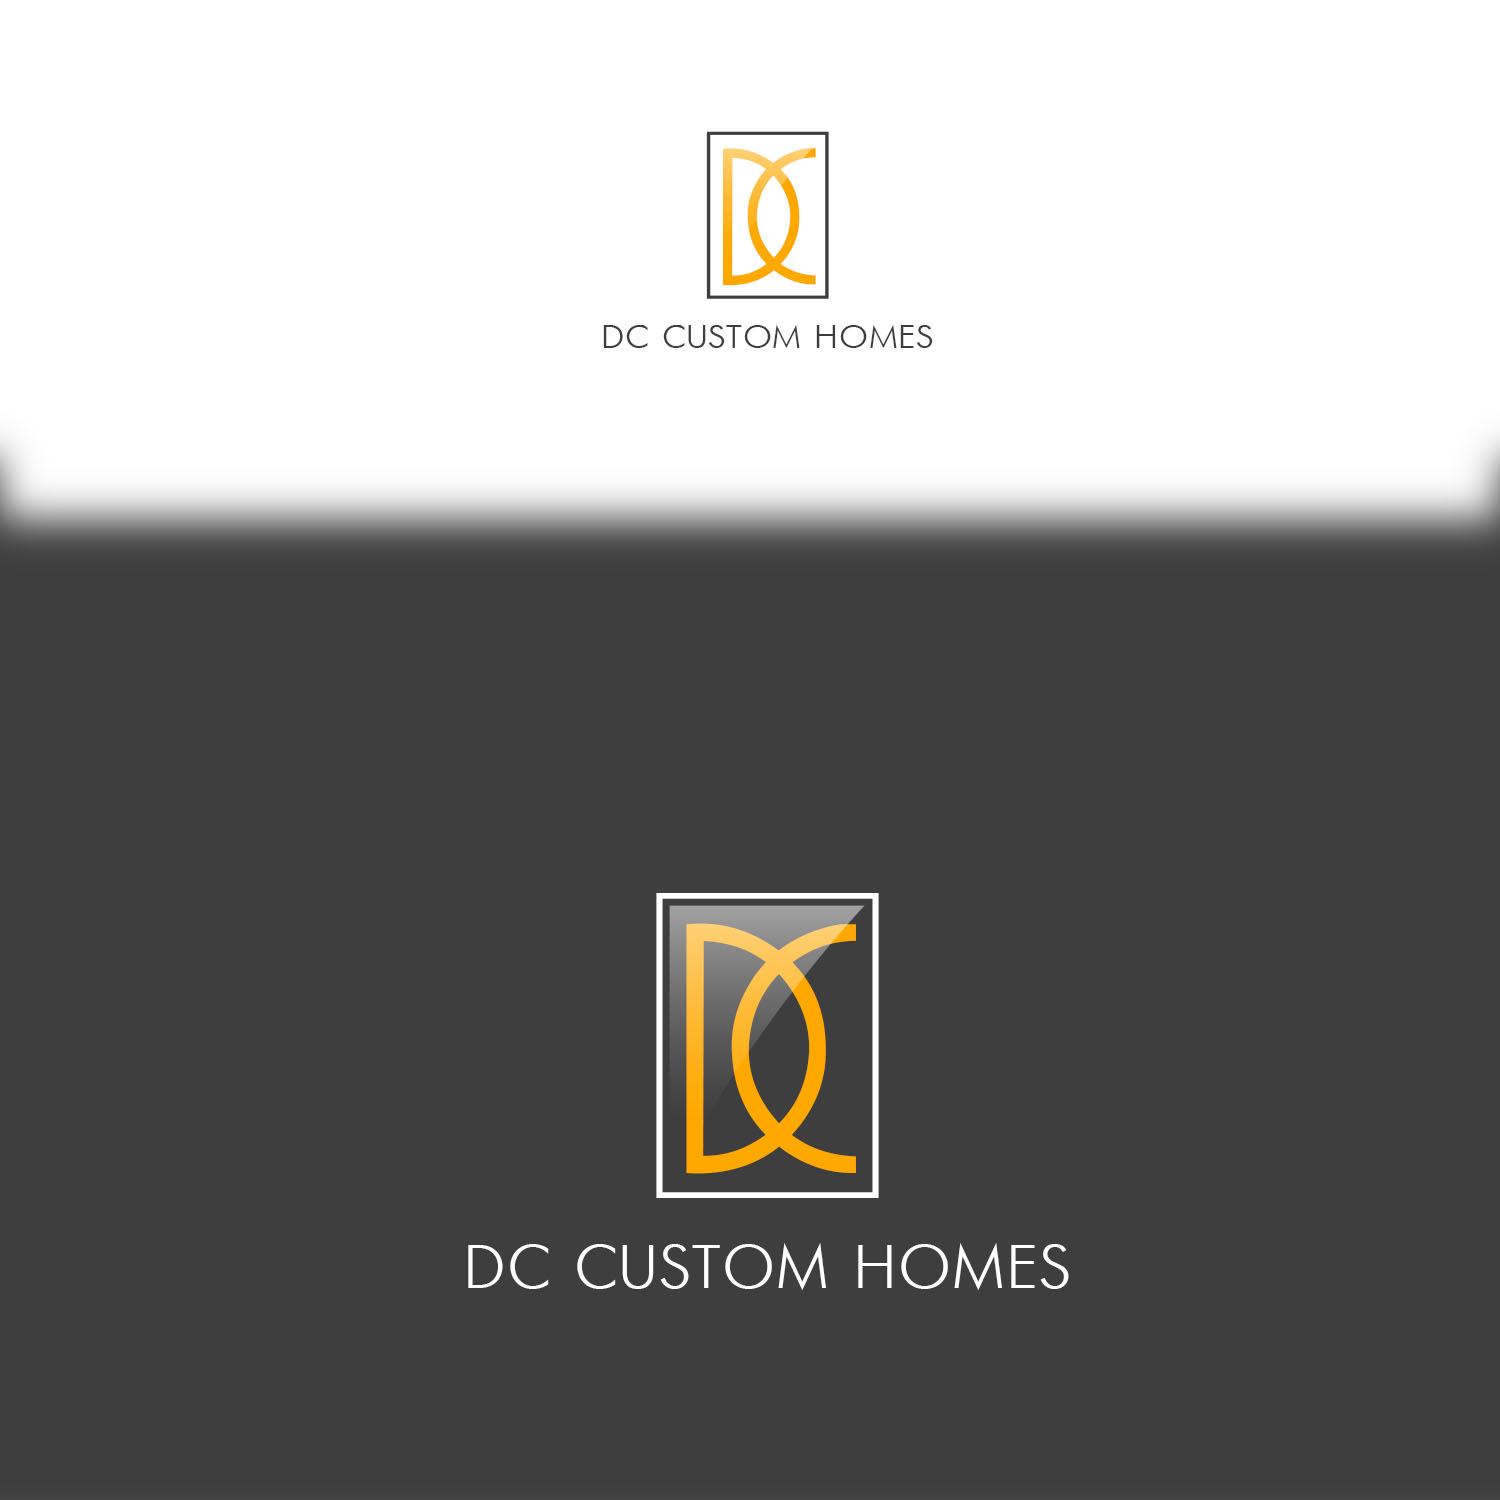 Logo Design by Private User - Entry No. 163 in the Logo Design Contest Creative Logo Design for DC Custom Homes.